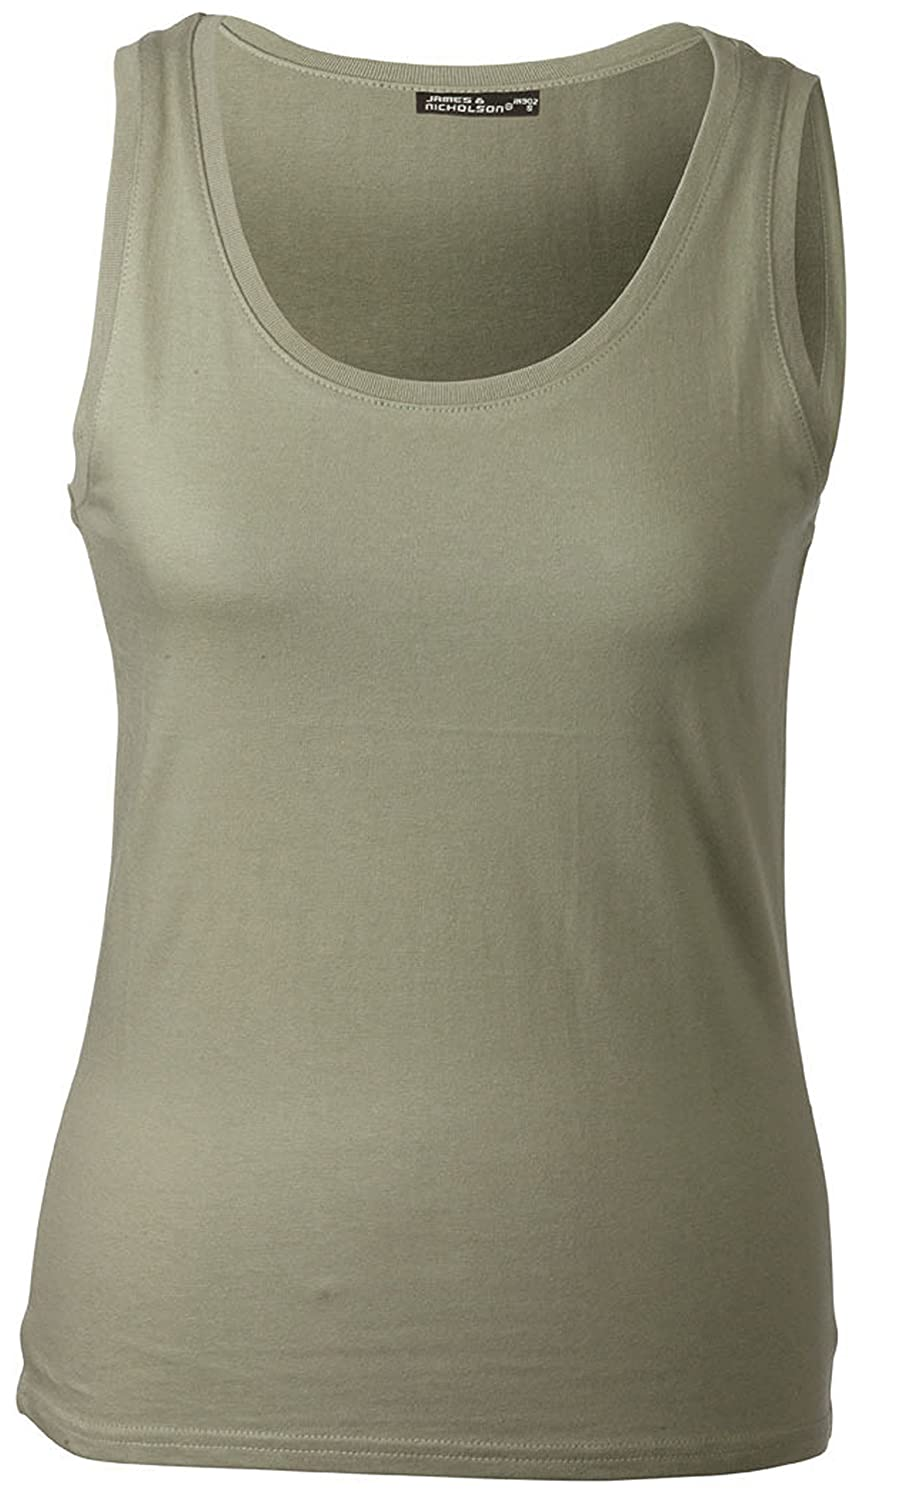 LADIES CLASSIC COTTON VEST TANK TOP IN 13 COLOURS AND SIZES 34-46 J/N